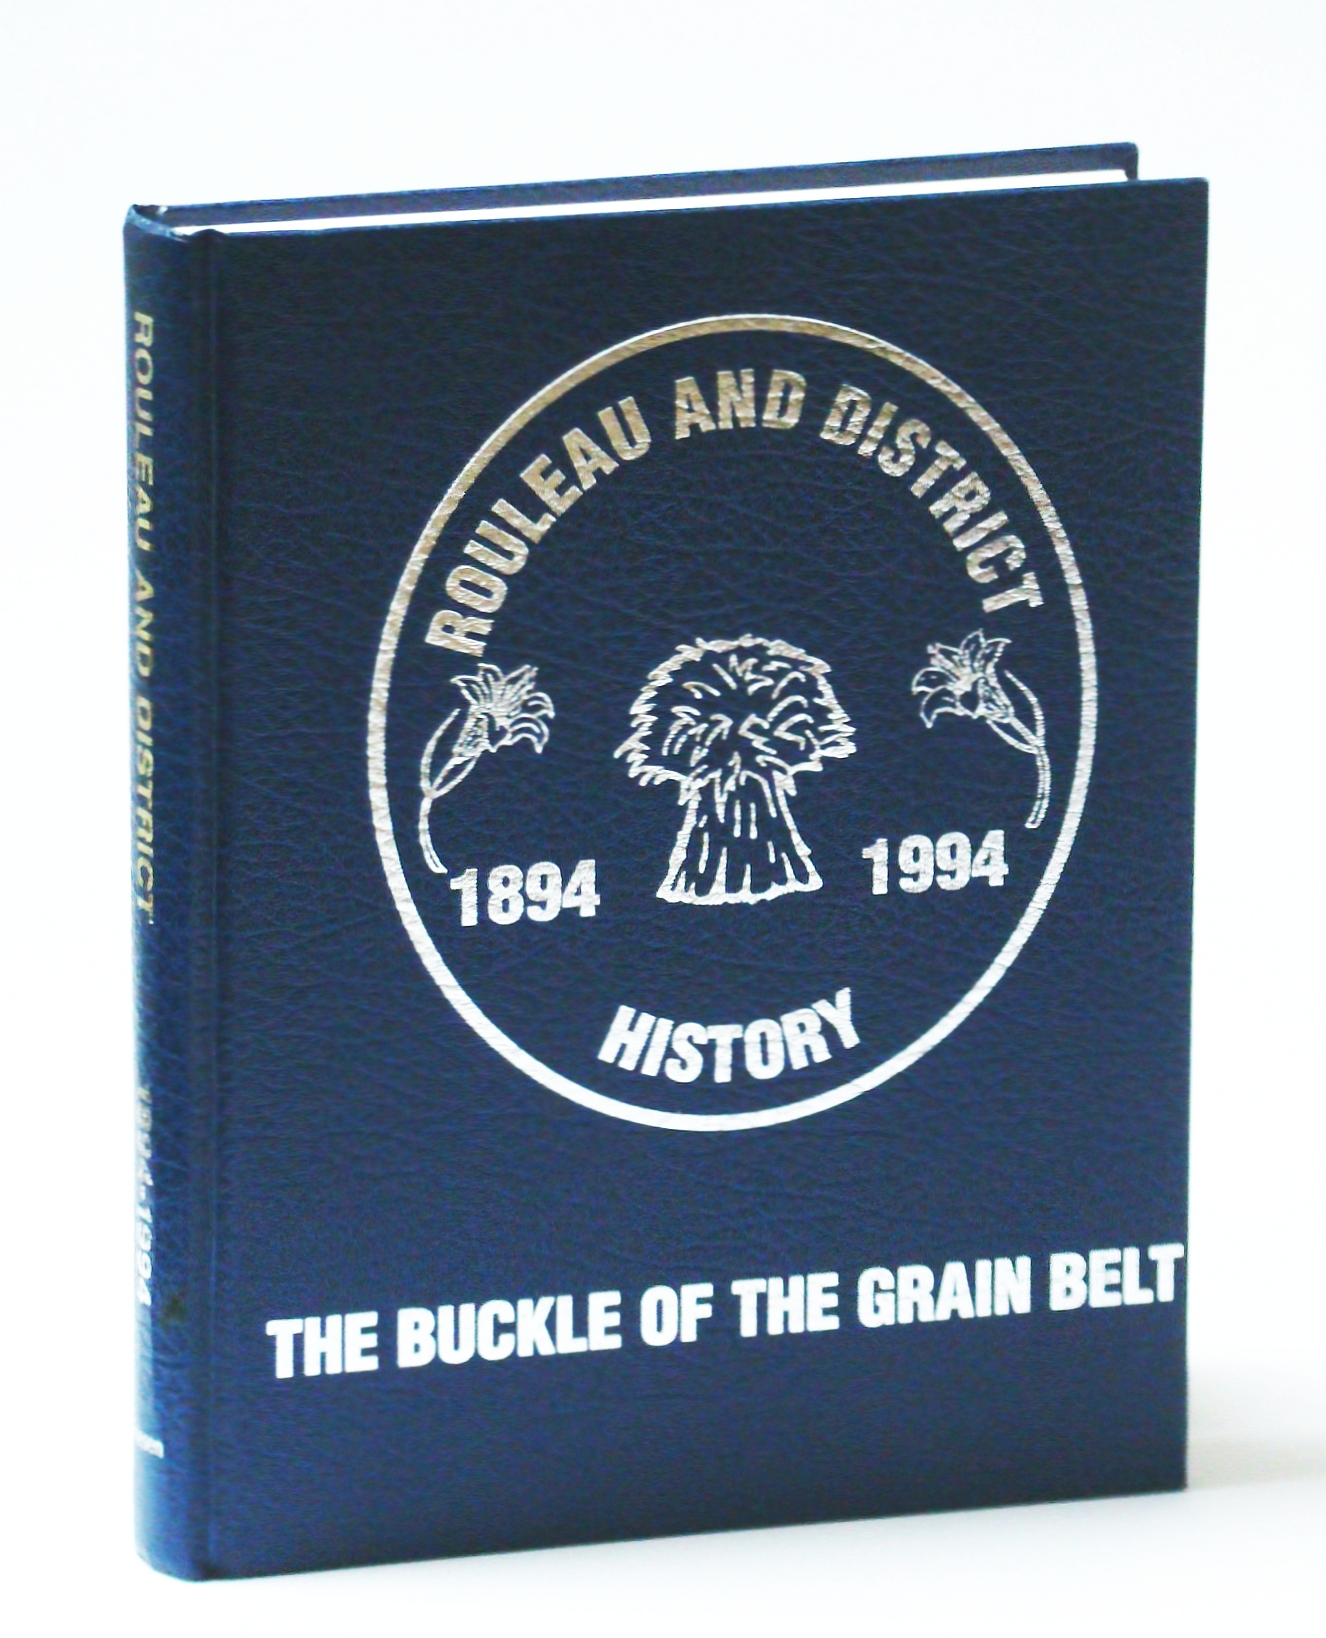 Image for Rouleau [Saskatchewan] and District History 1894-1994: The Buckle of the Grain Belt